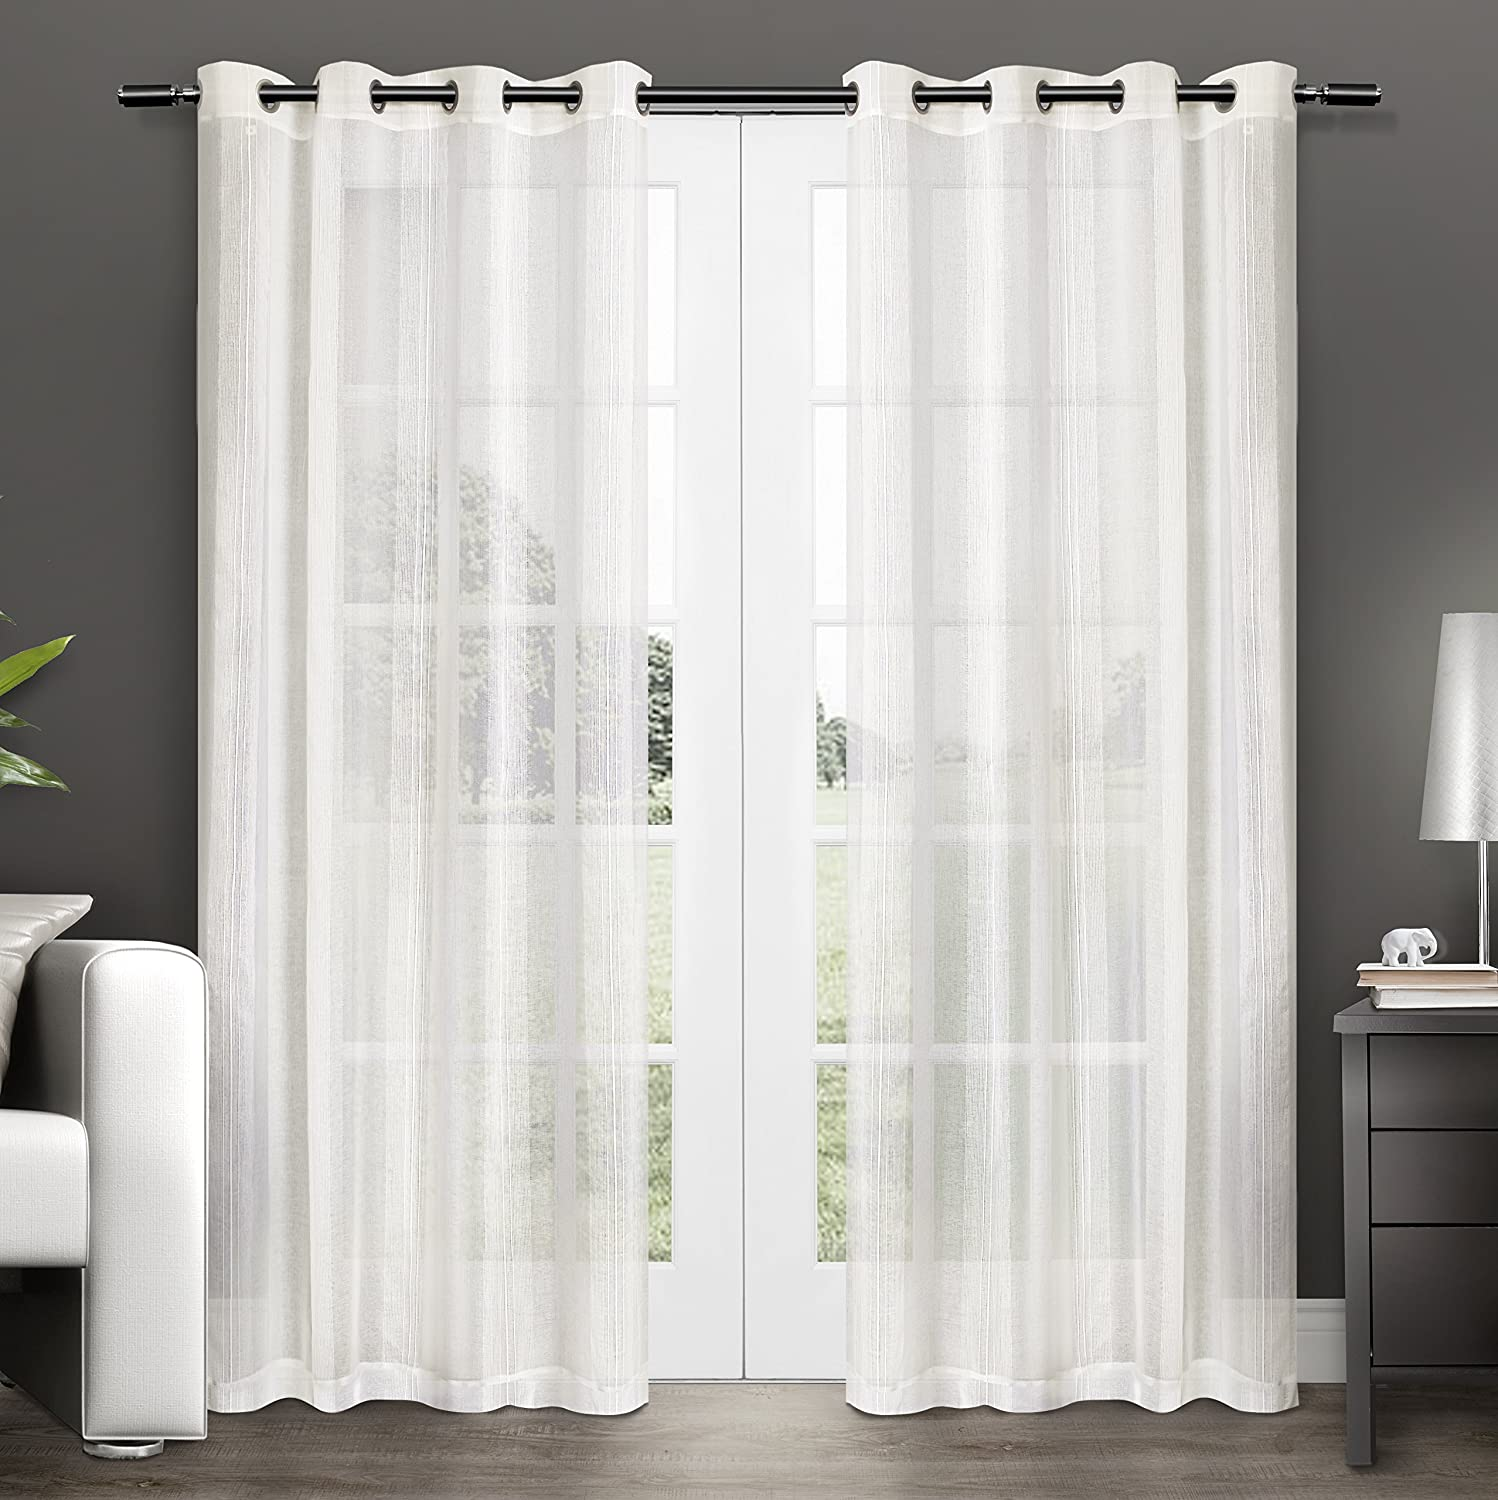 Amazon Exclusive Home Curtains Penny Sheer Grommet Top Window